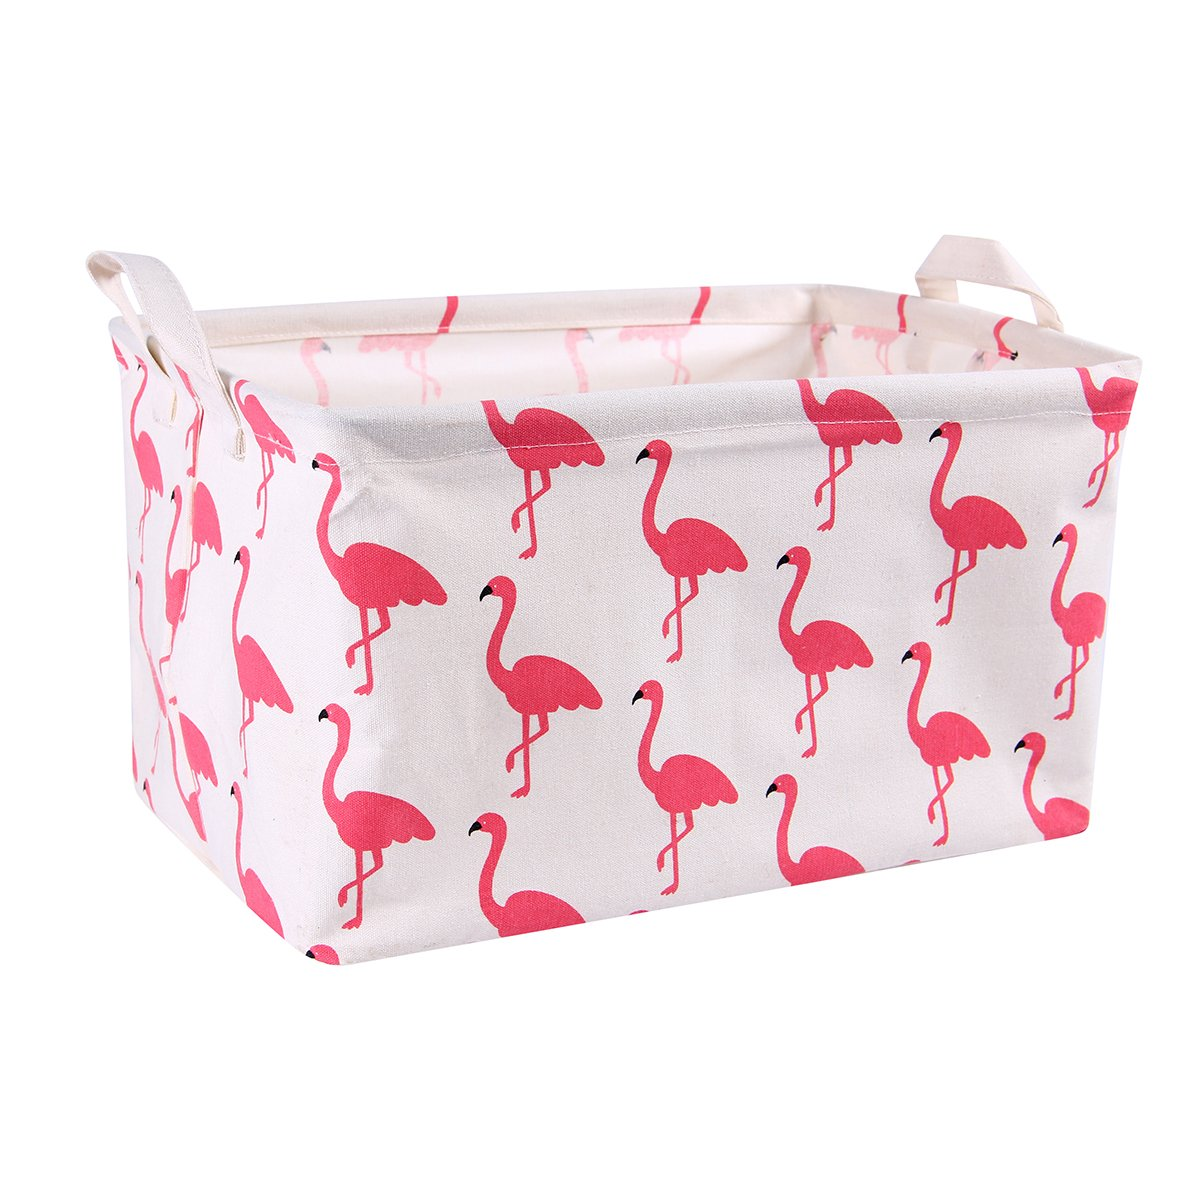 Flamingo Storage Bin Toy Basket Collapsible Box Chest Organizer Water-resistant, Great for Bedroom, Closet, Kid's Toys, & Laundry, Gift Baskets